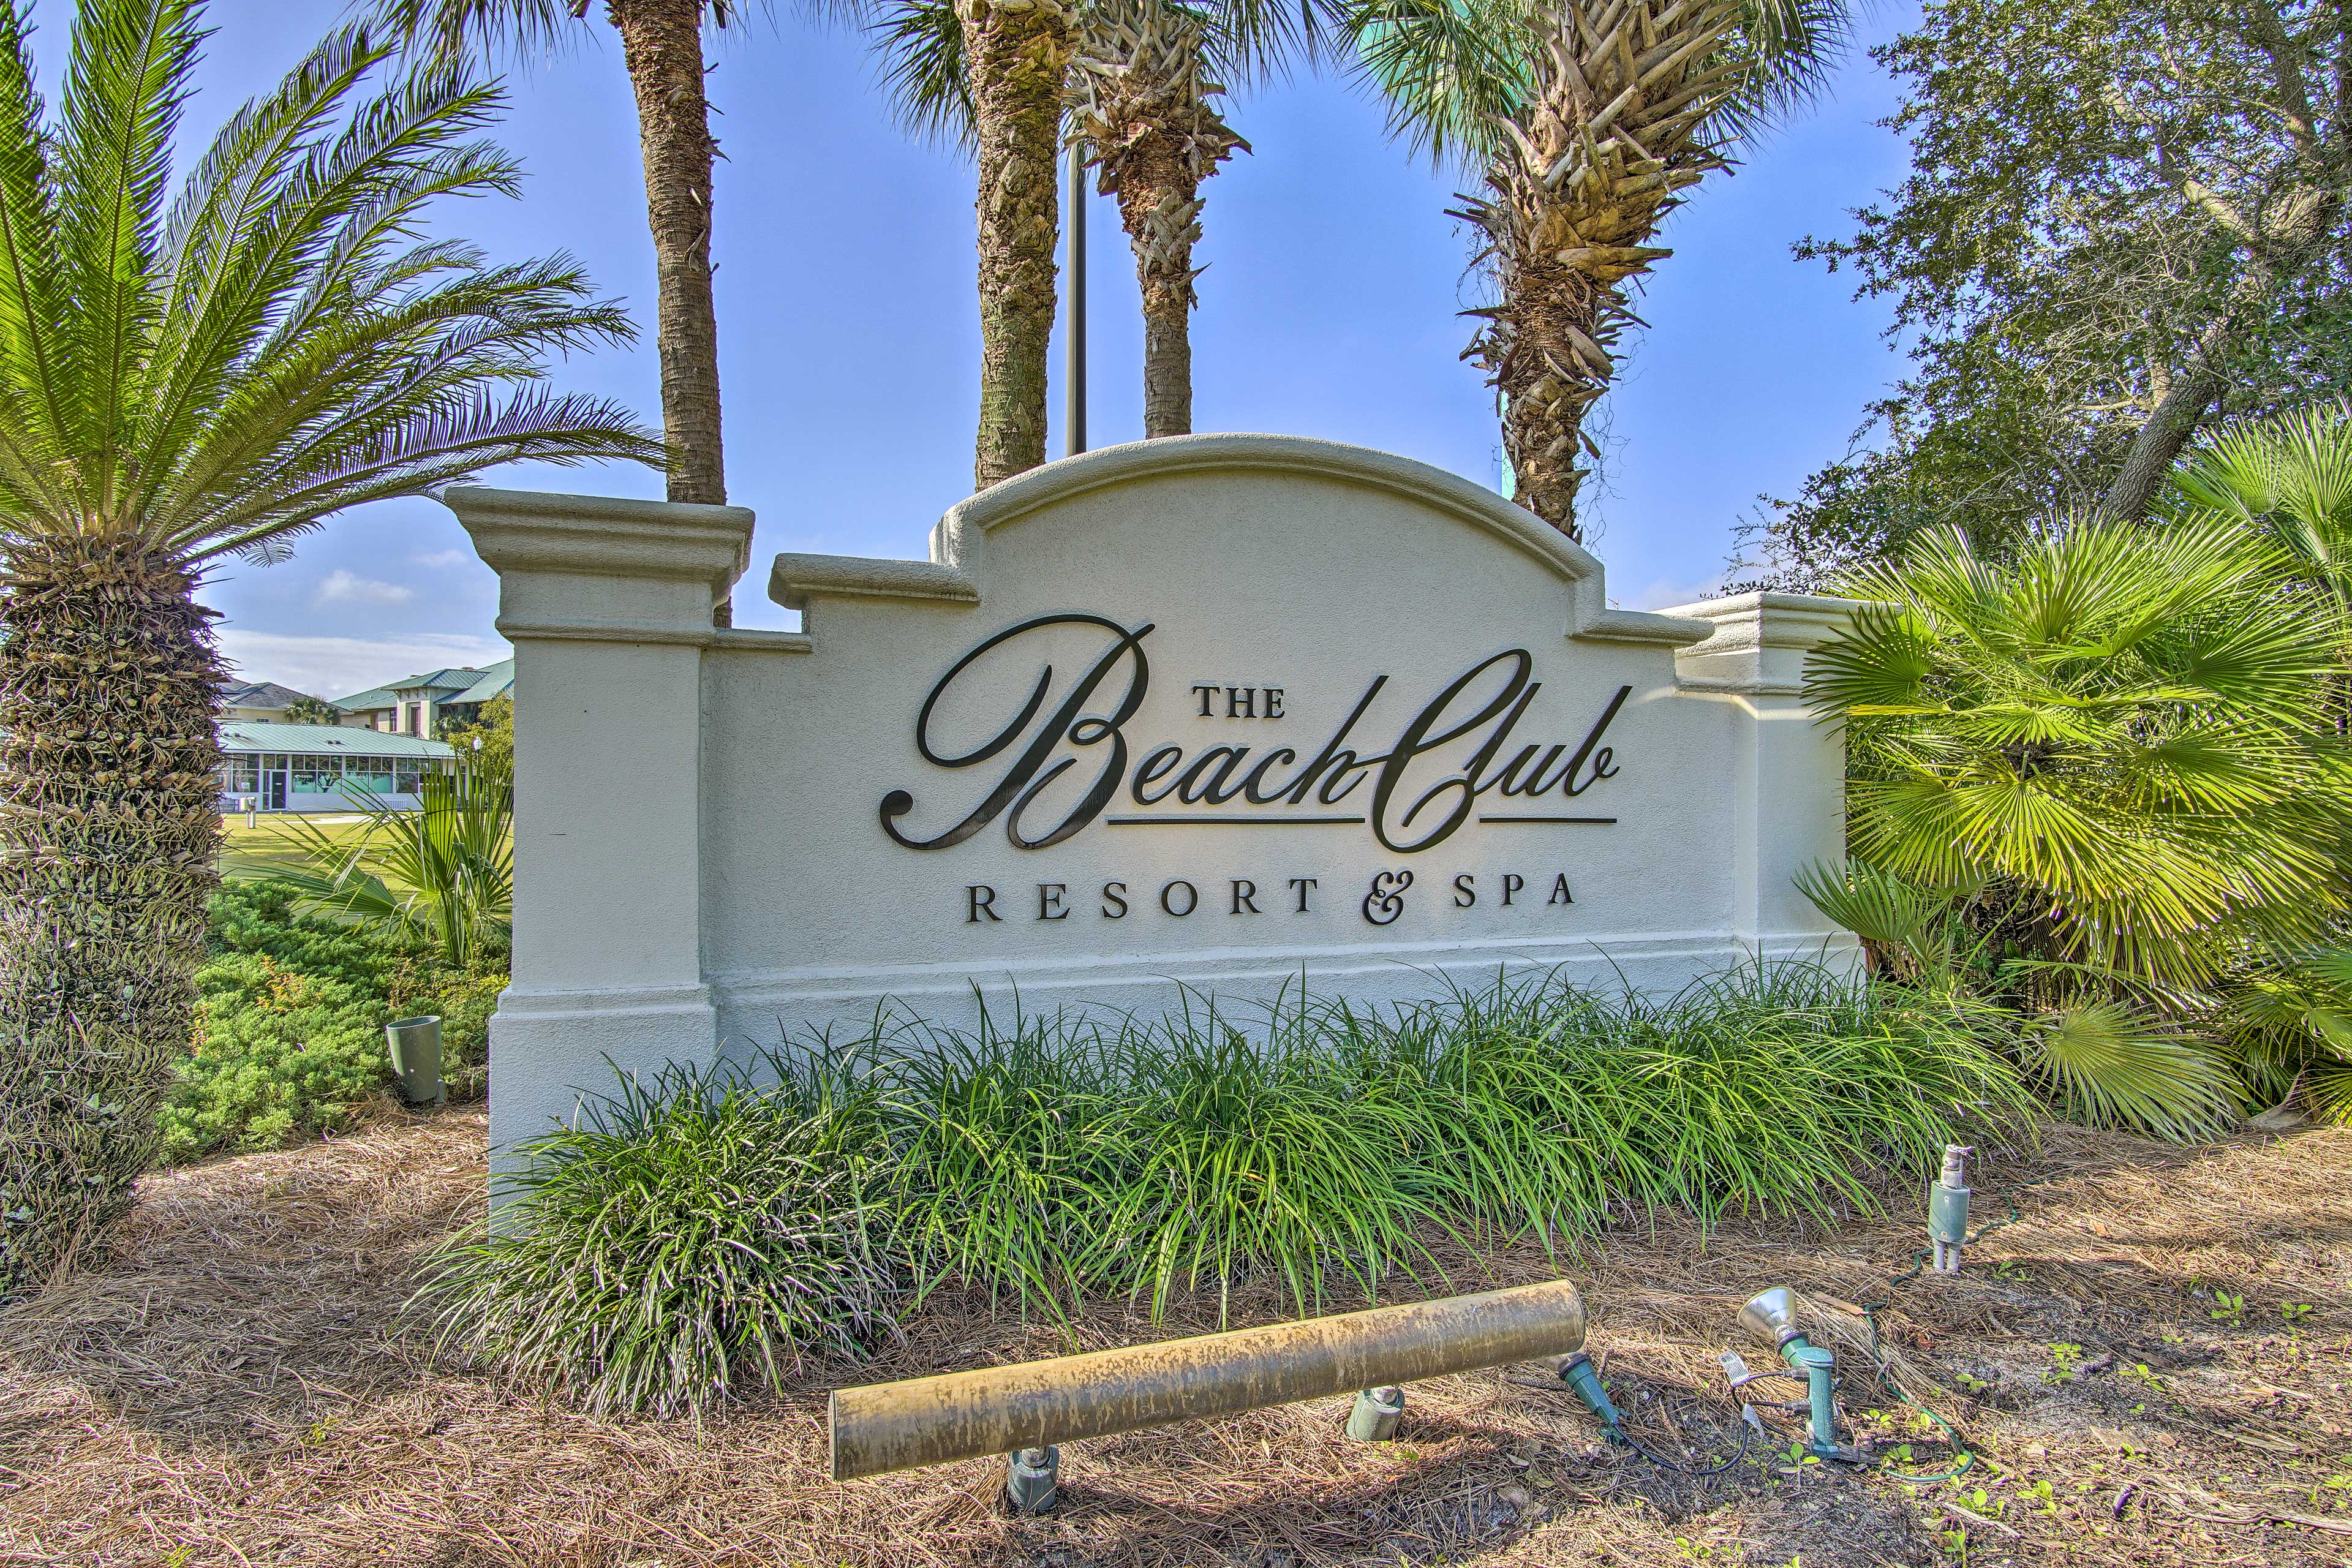 It doesn't get any better than The Beach Club for your next Alabama getaway!